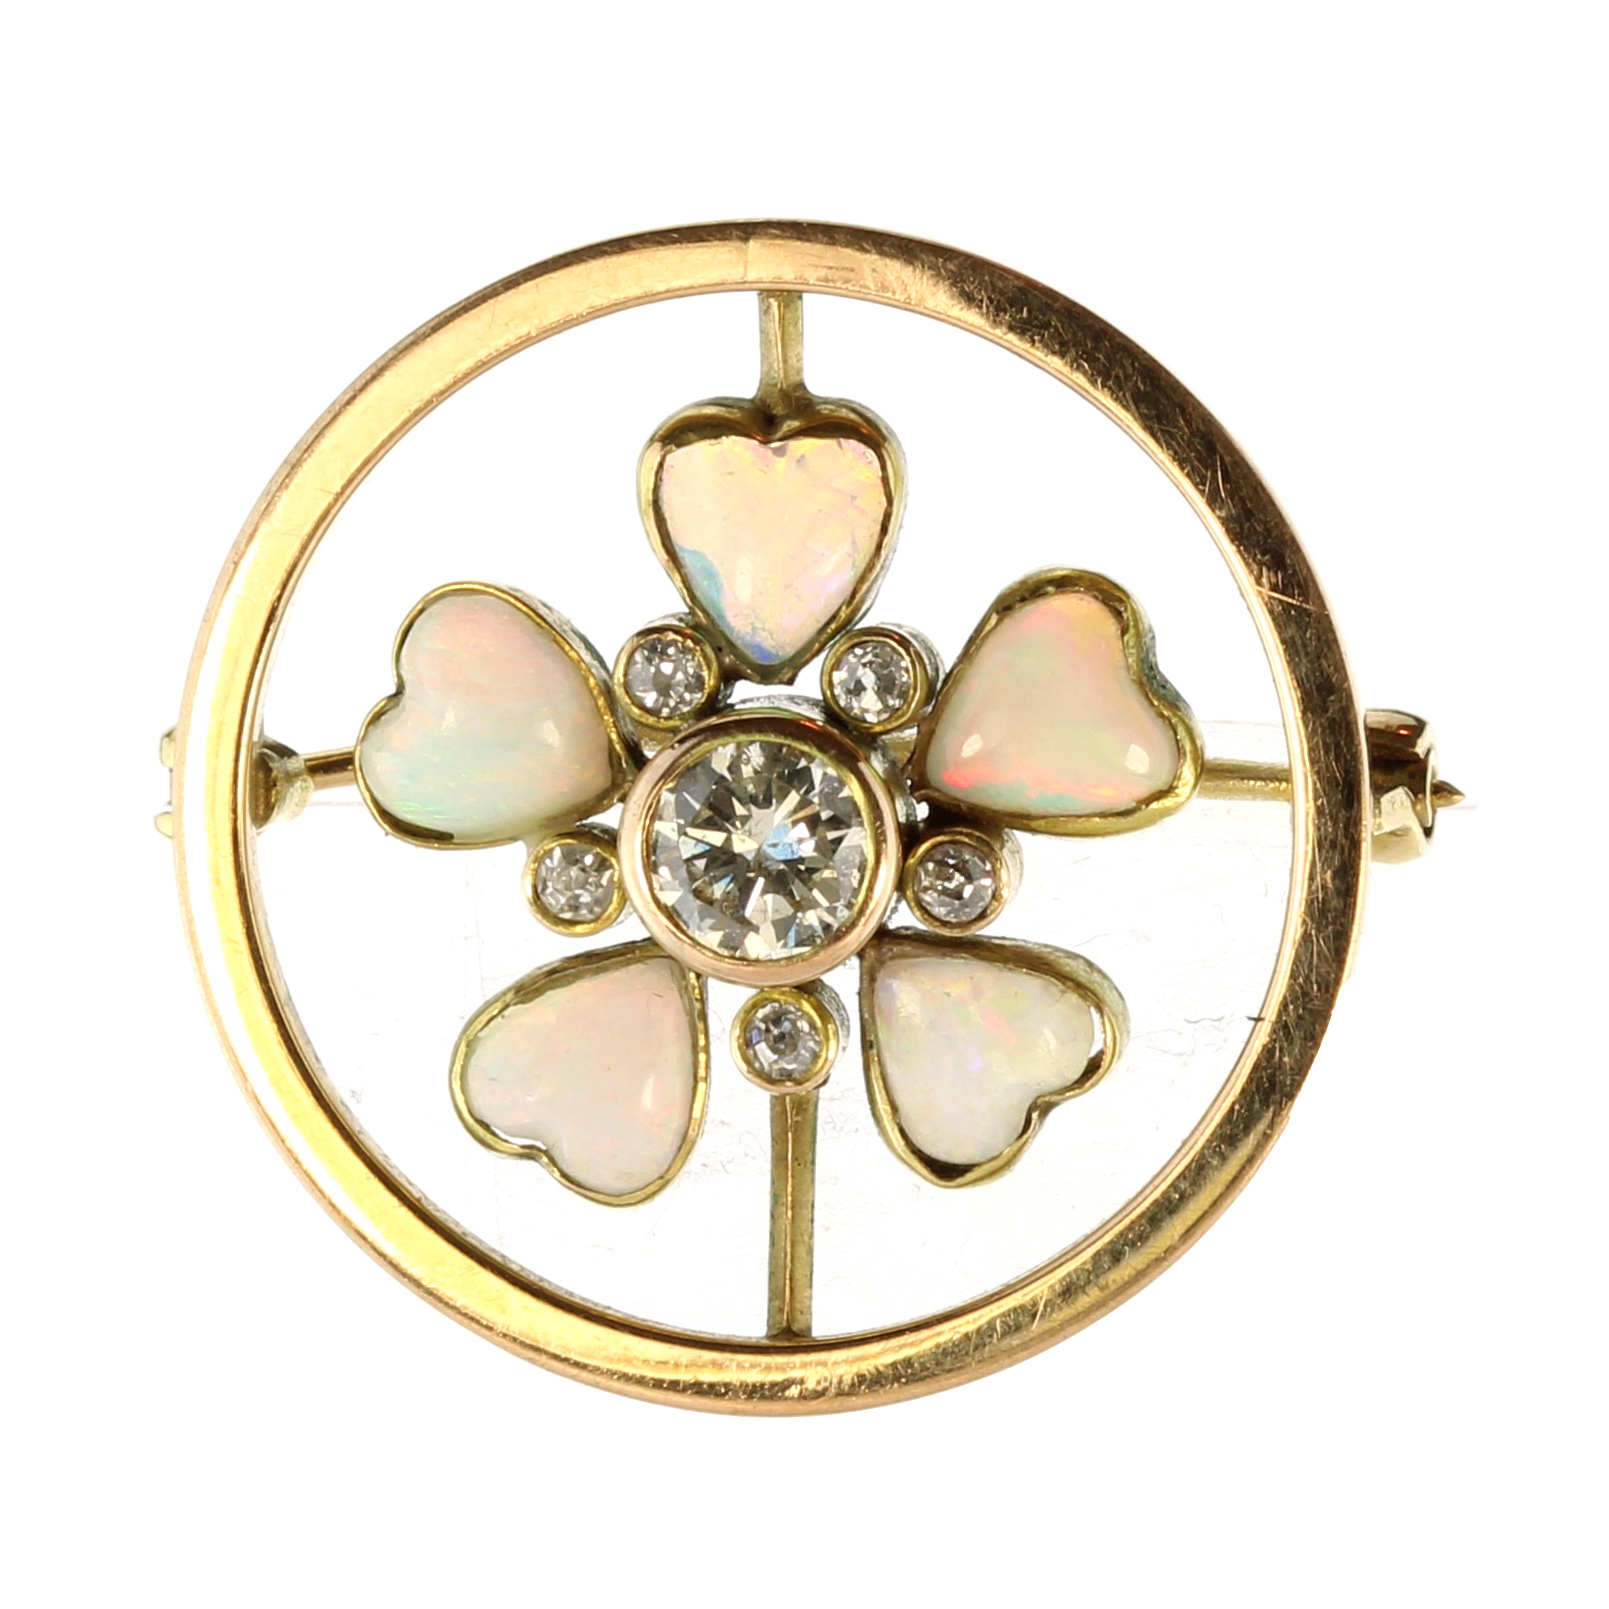 Los 7 - An opal and diamond flower brooch in high carat yellow gold set with a central round cut diamond